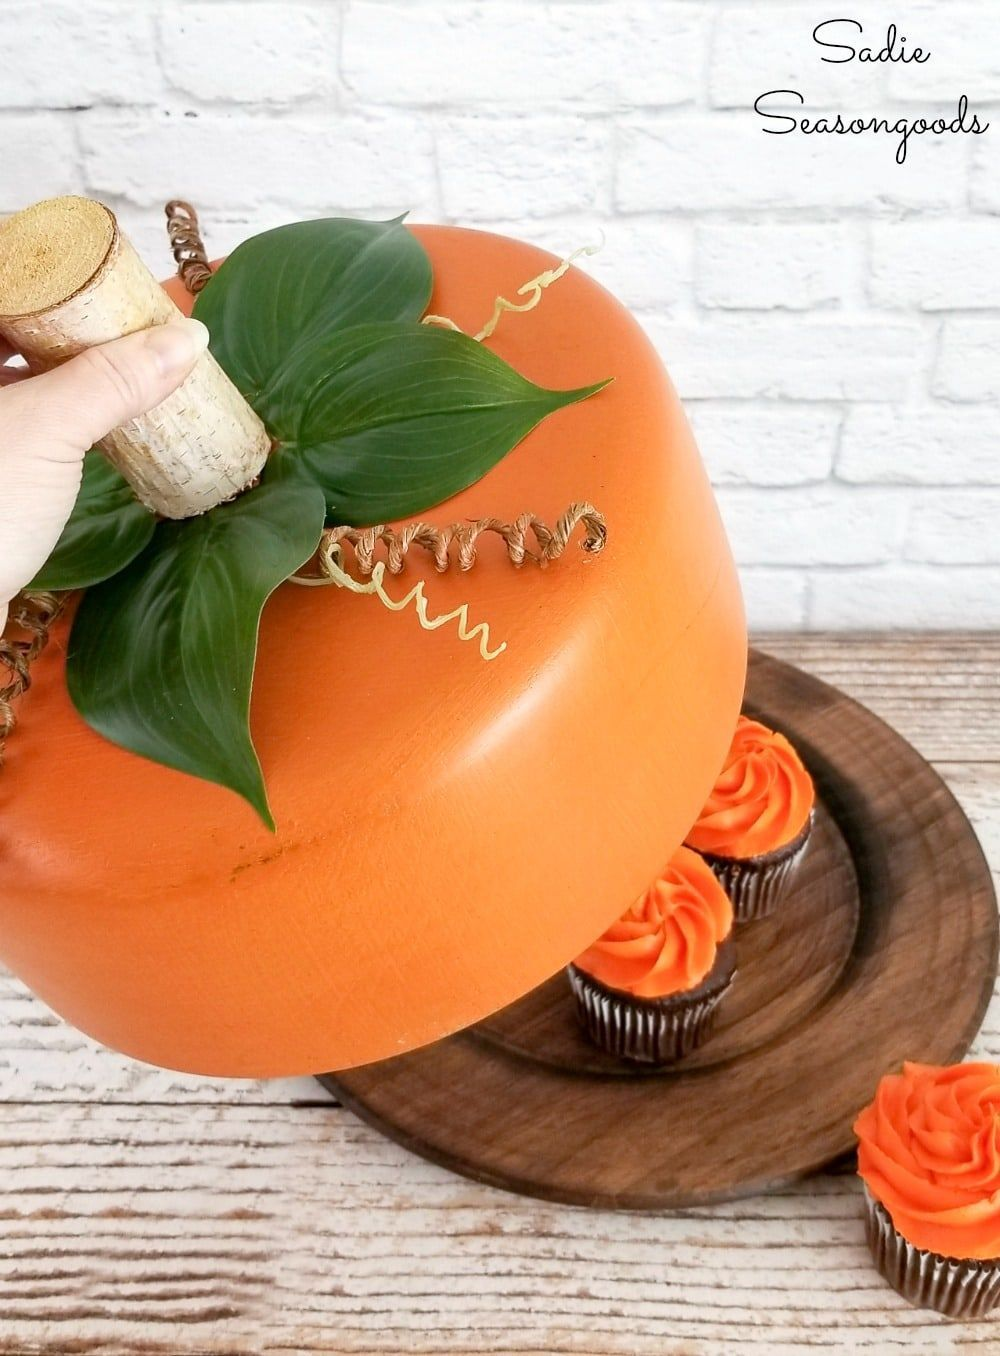 Pumpkin-Shaped Cake Dome and Food Saver for Fall or Autumn Parties! #pumpkinshapedcake Pumpkin craft ideas with a wooden bowl that has been upcycled into a cake dome #pumpkinshapedcake